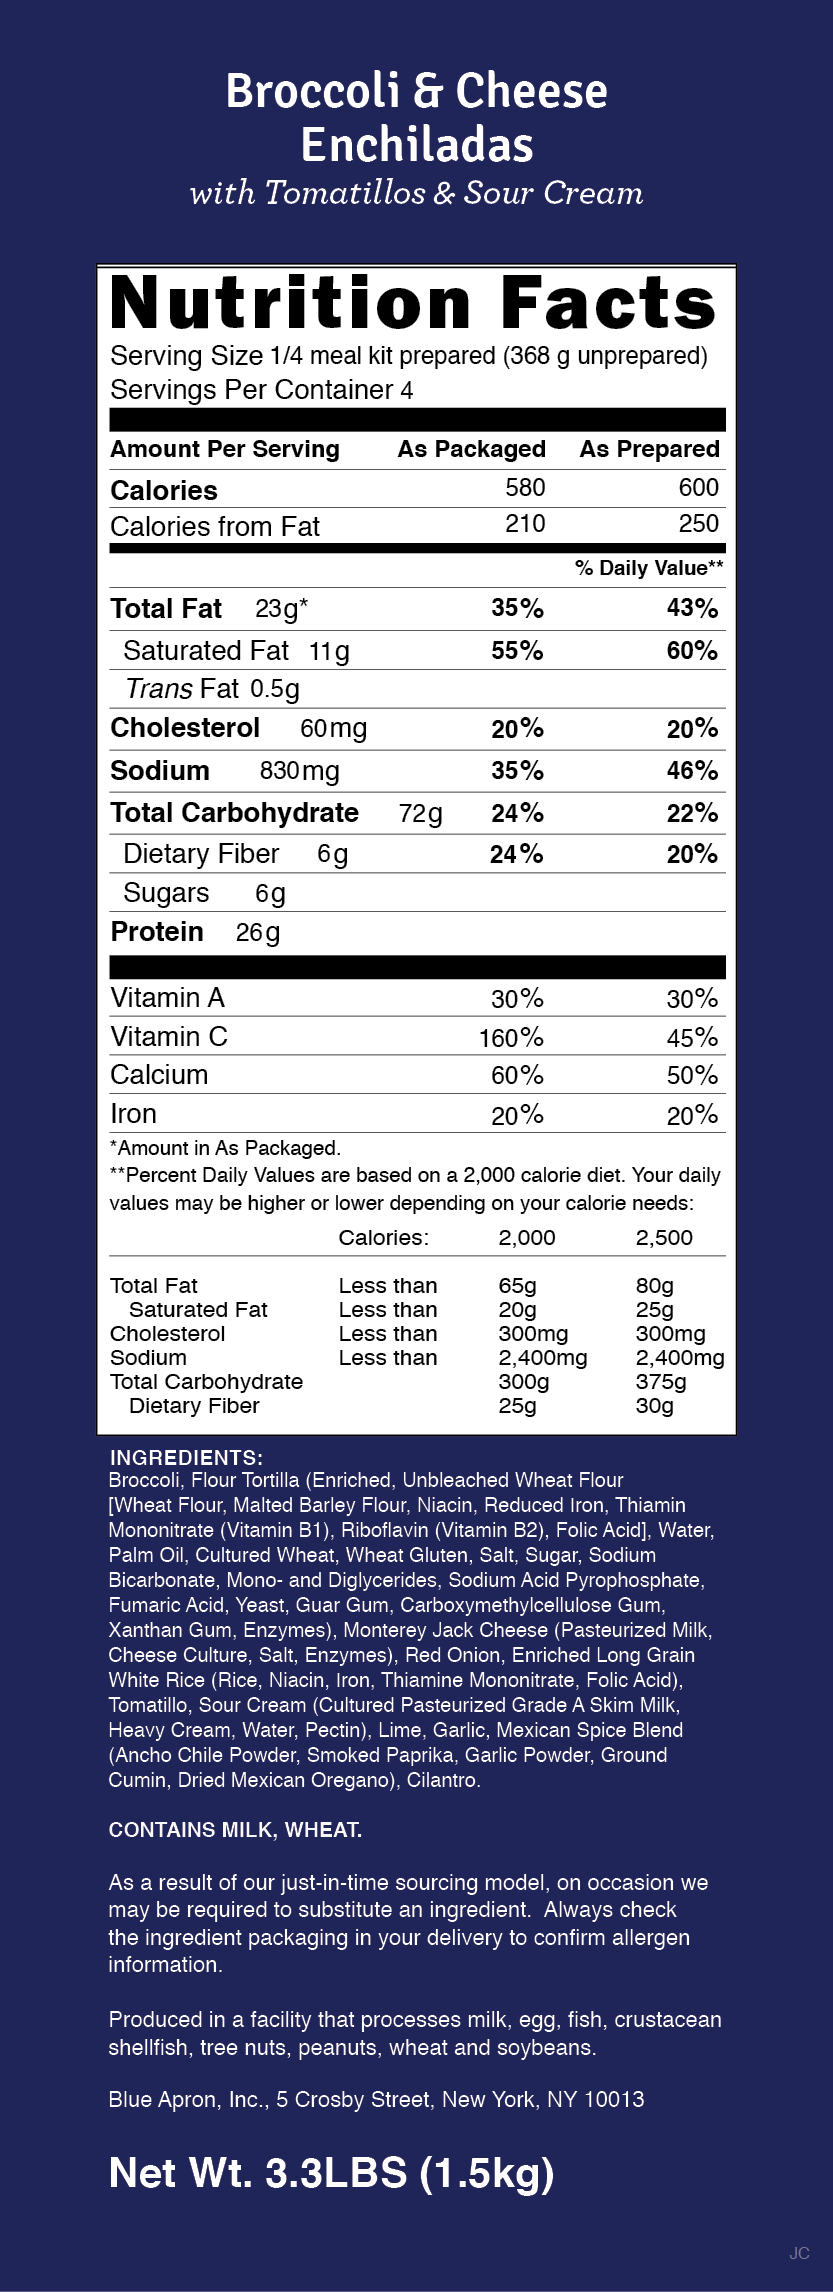 Blue apron overpriced